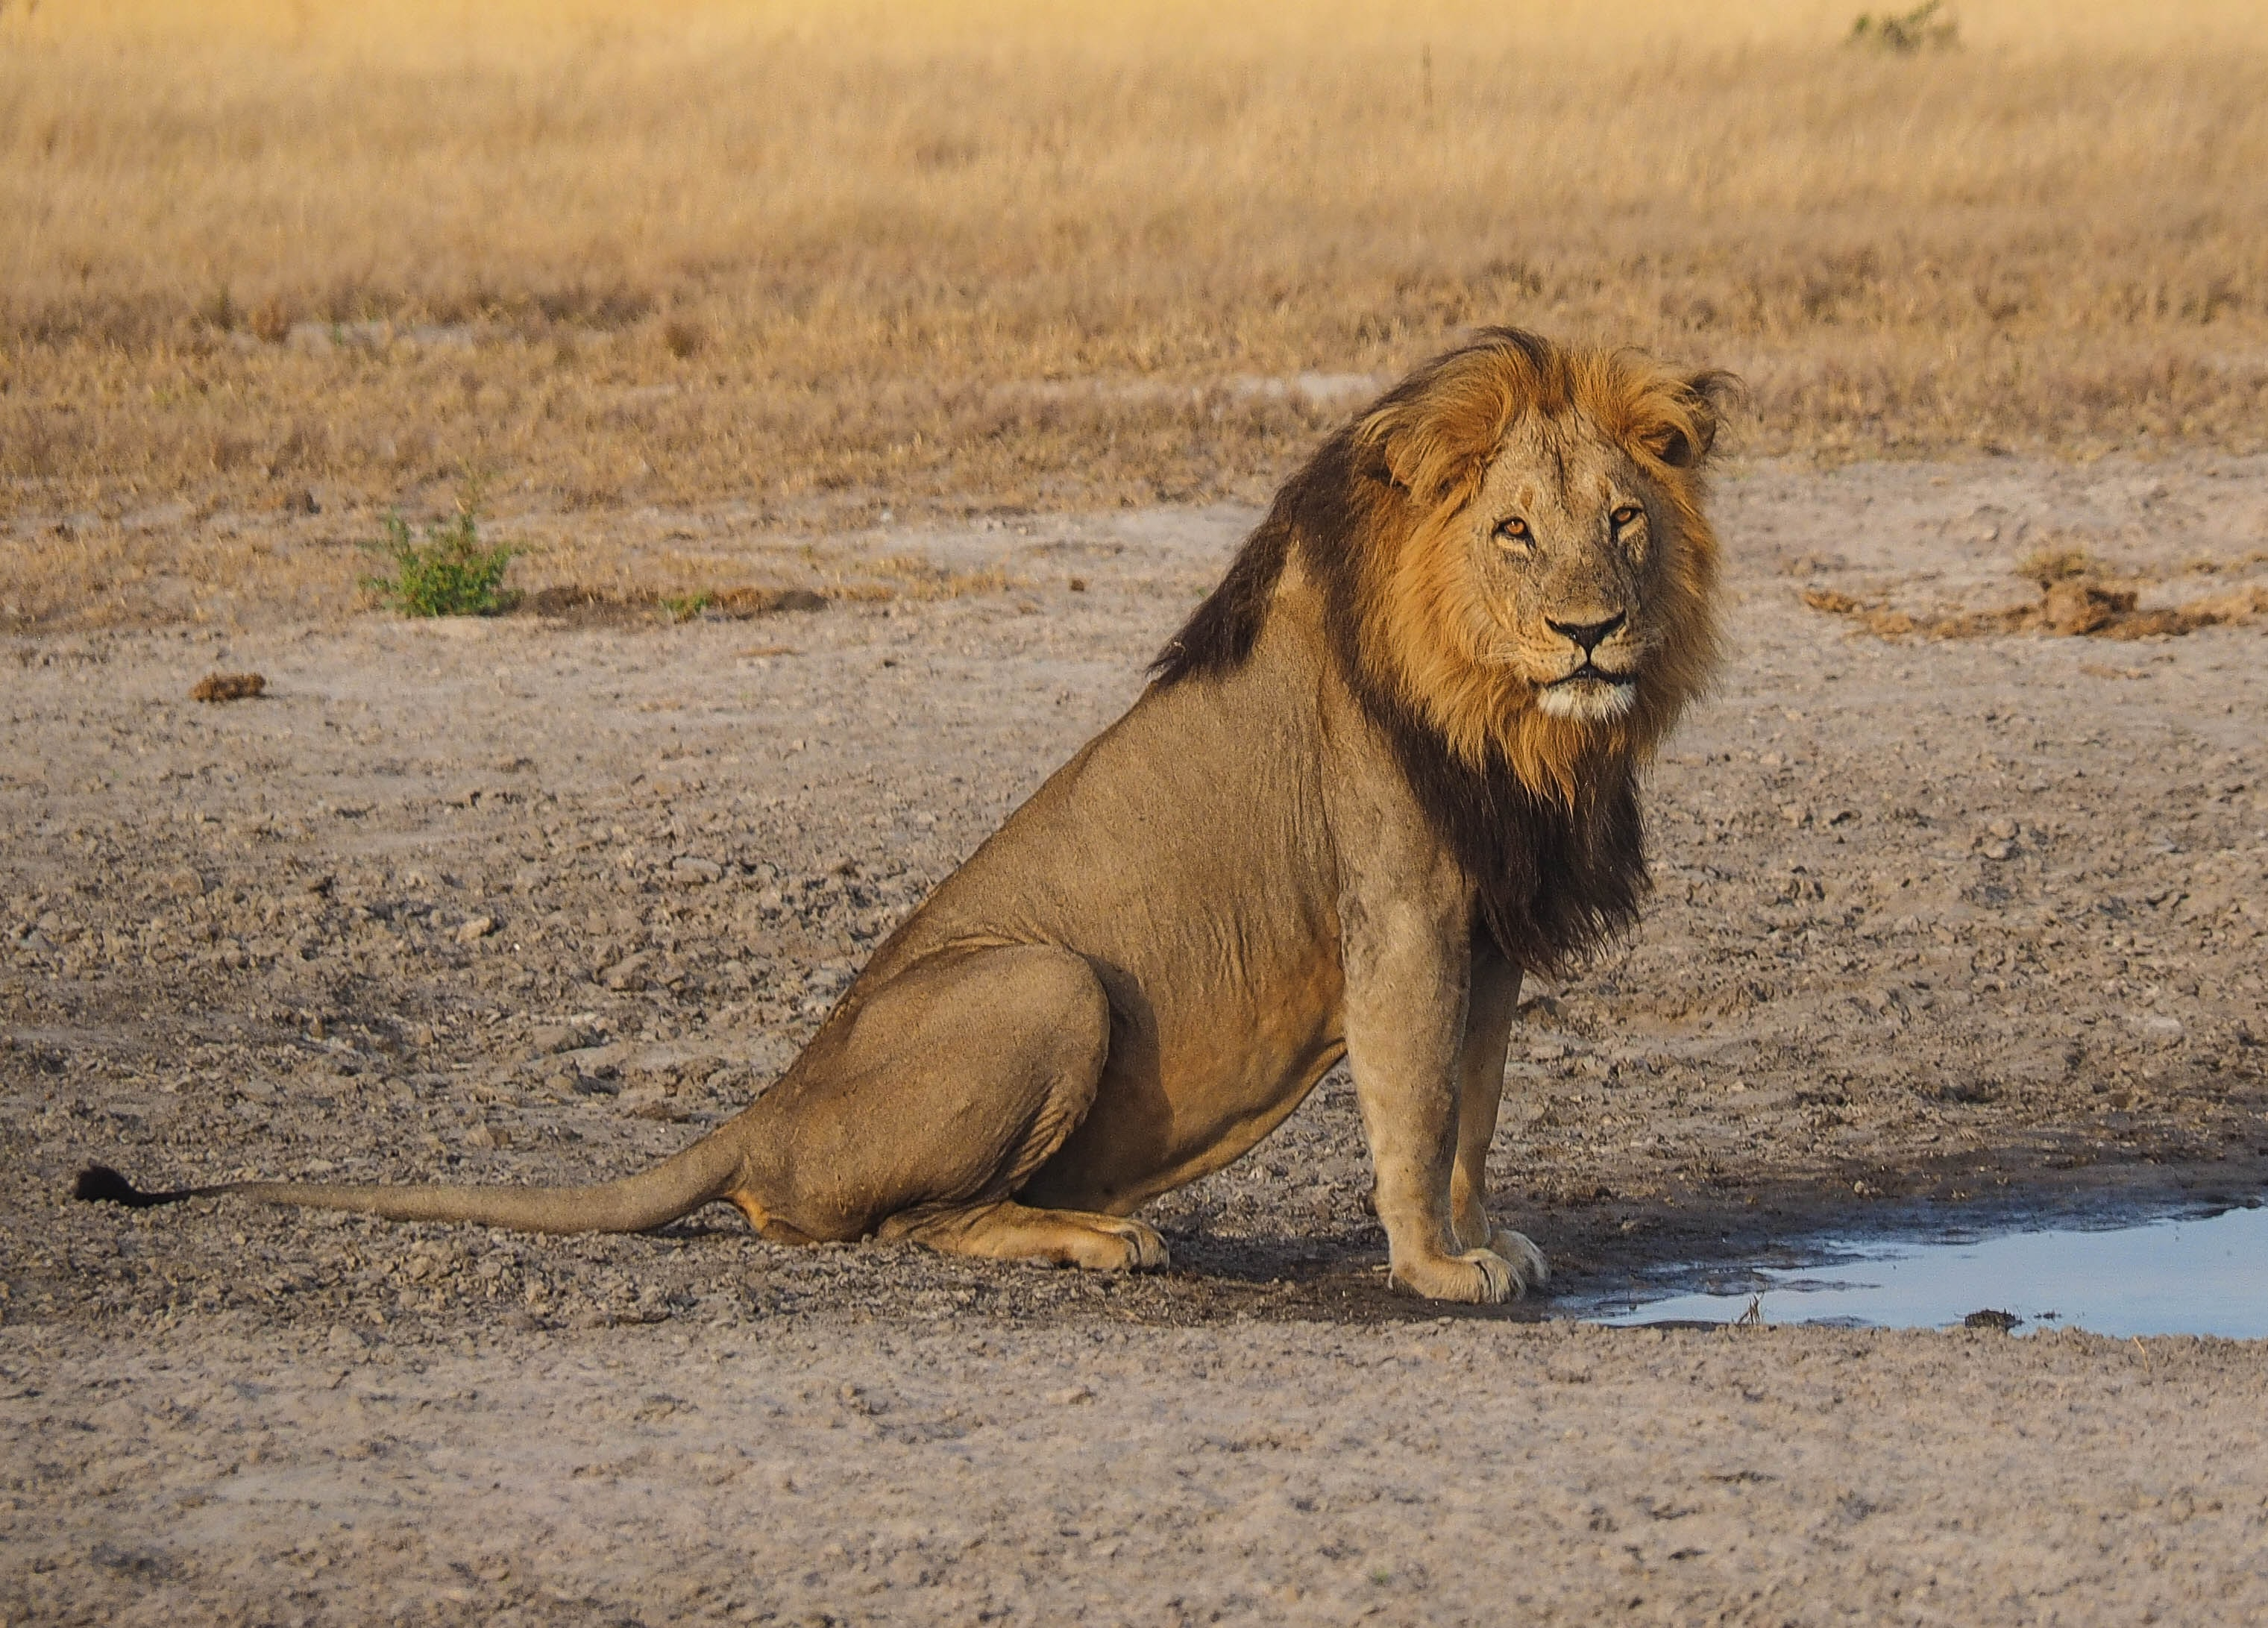 brown lion on land near body of water